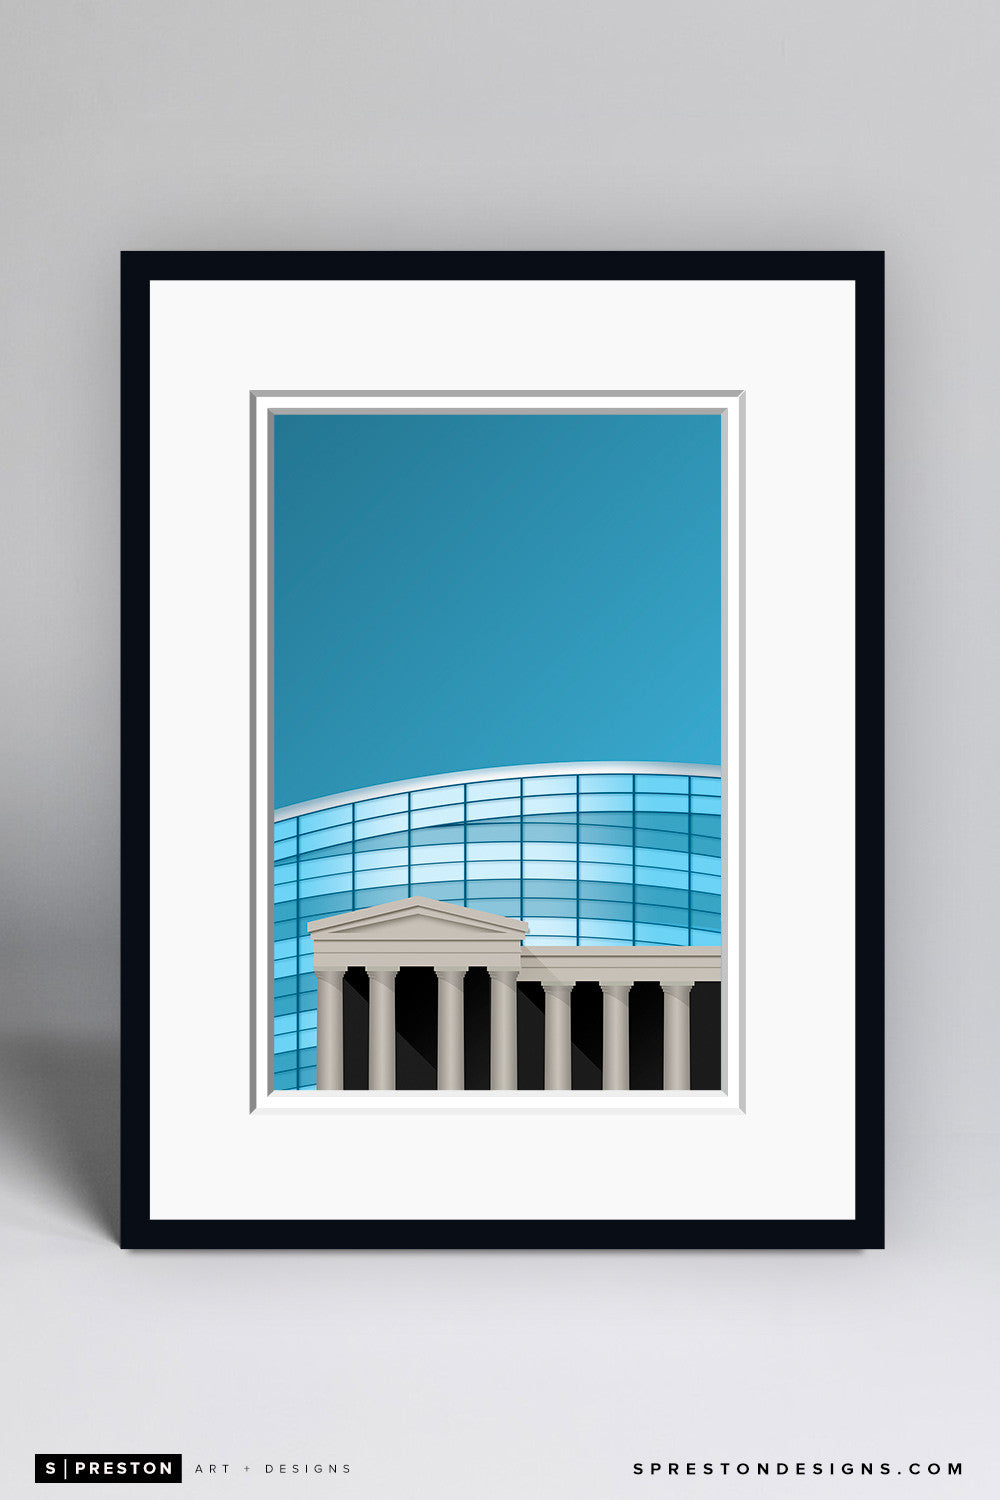 Minimalist Soldier Field Art Print - Chicago Bears - S. Preston Art + Designs